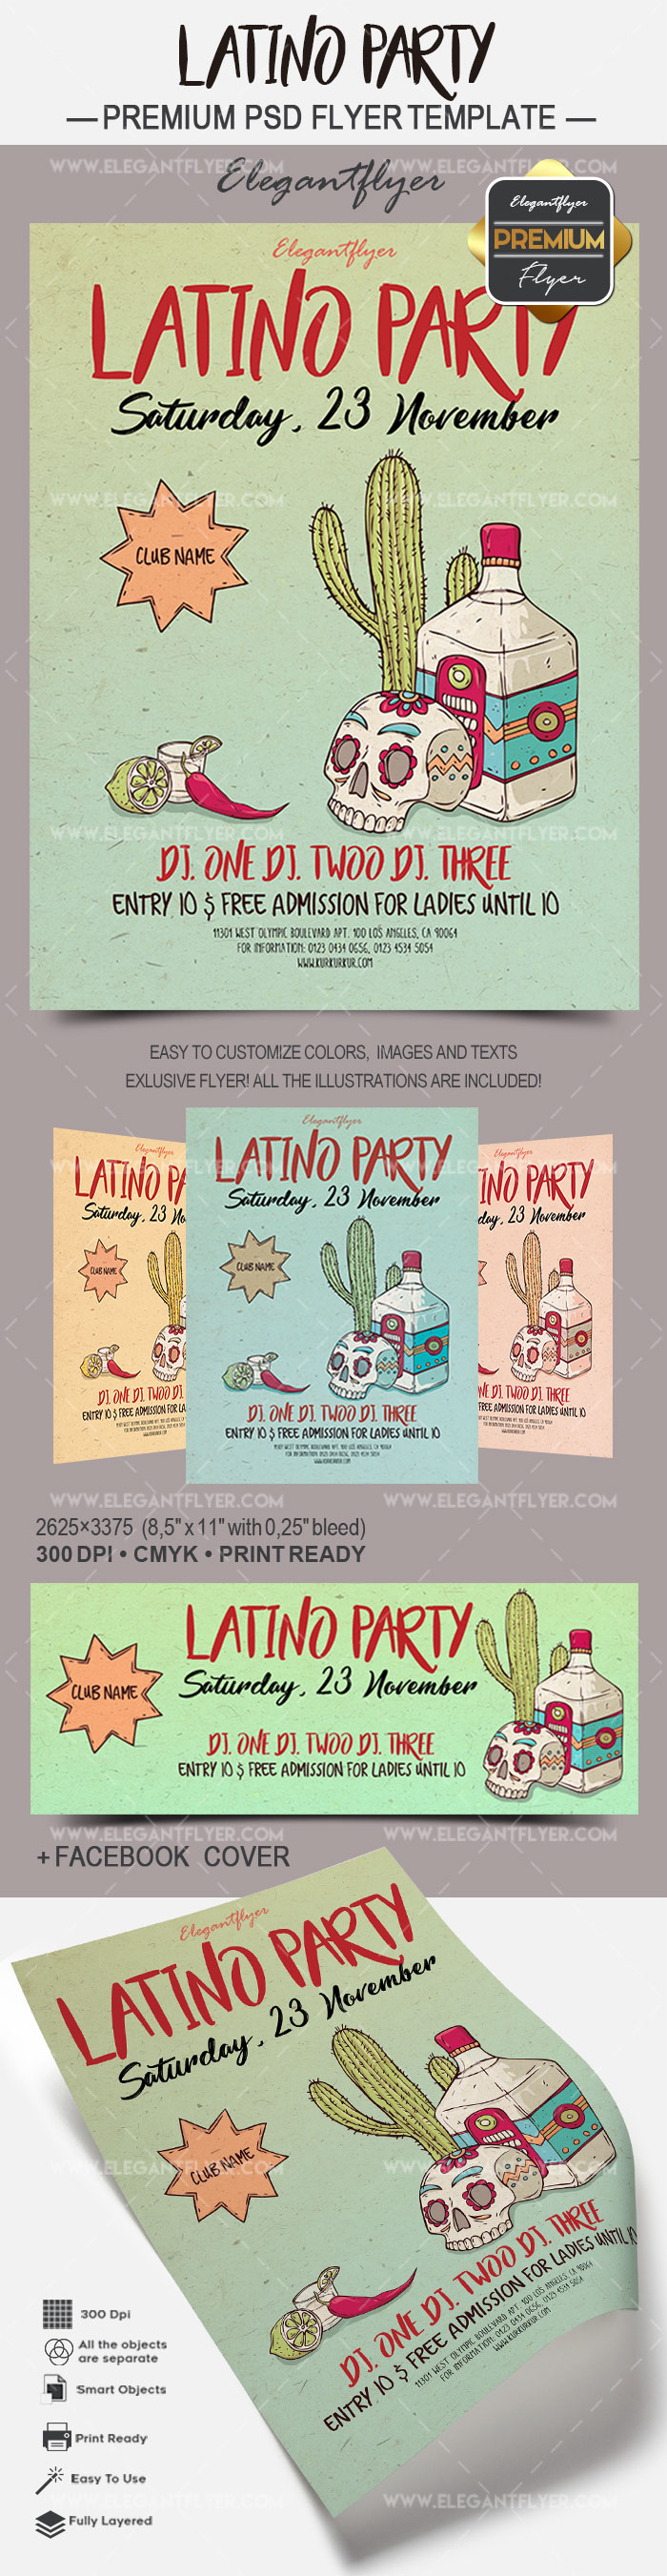 Latino Party – Flyer PSD Template